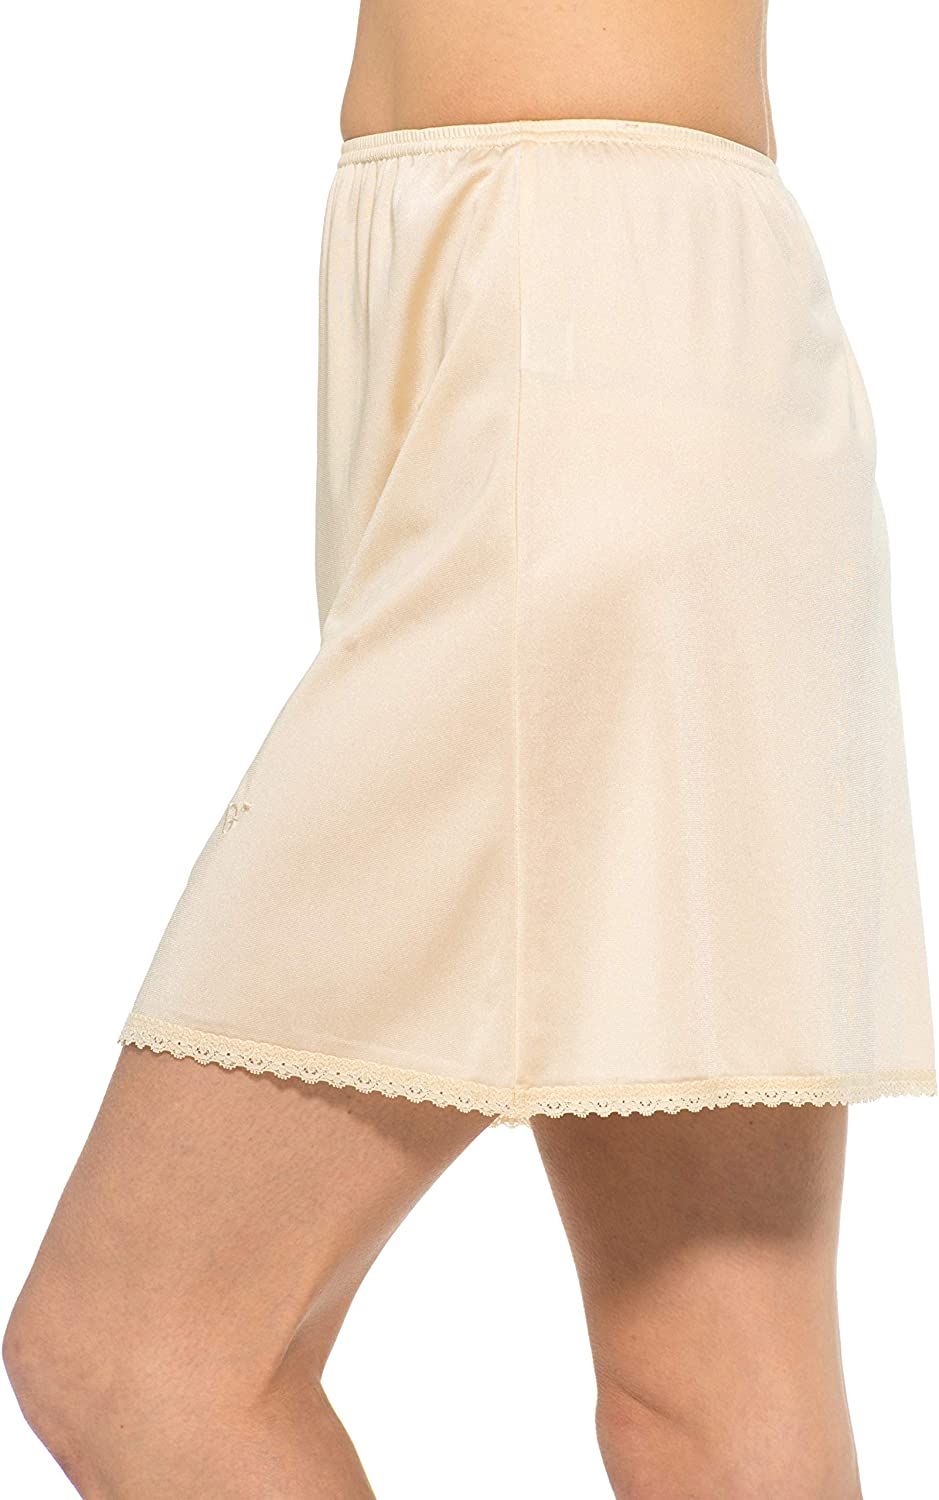 Best Seller! Gemsli Womens Classica Cling Free Nylon Half Slip with Tiny Lace